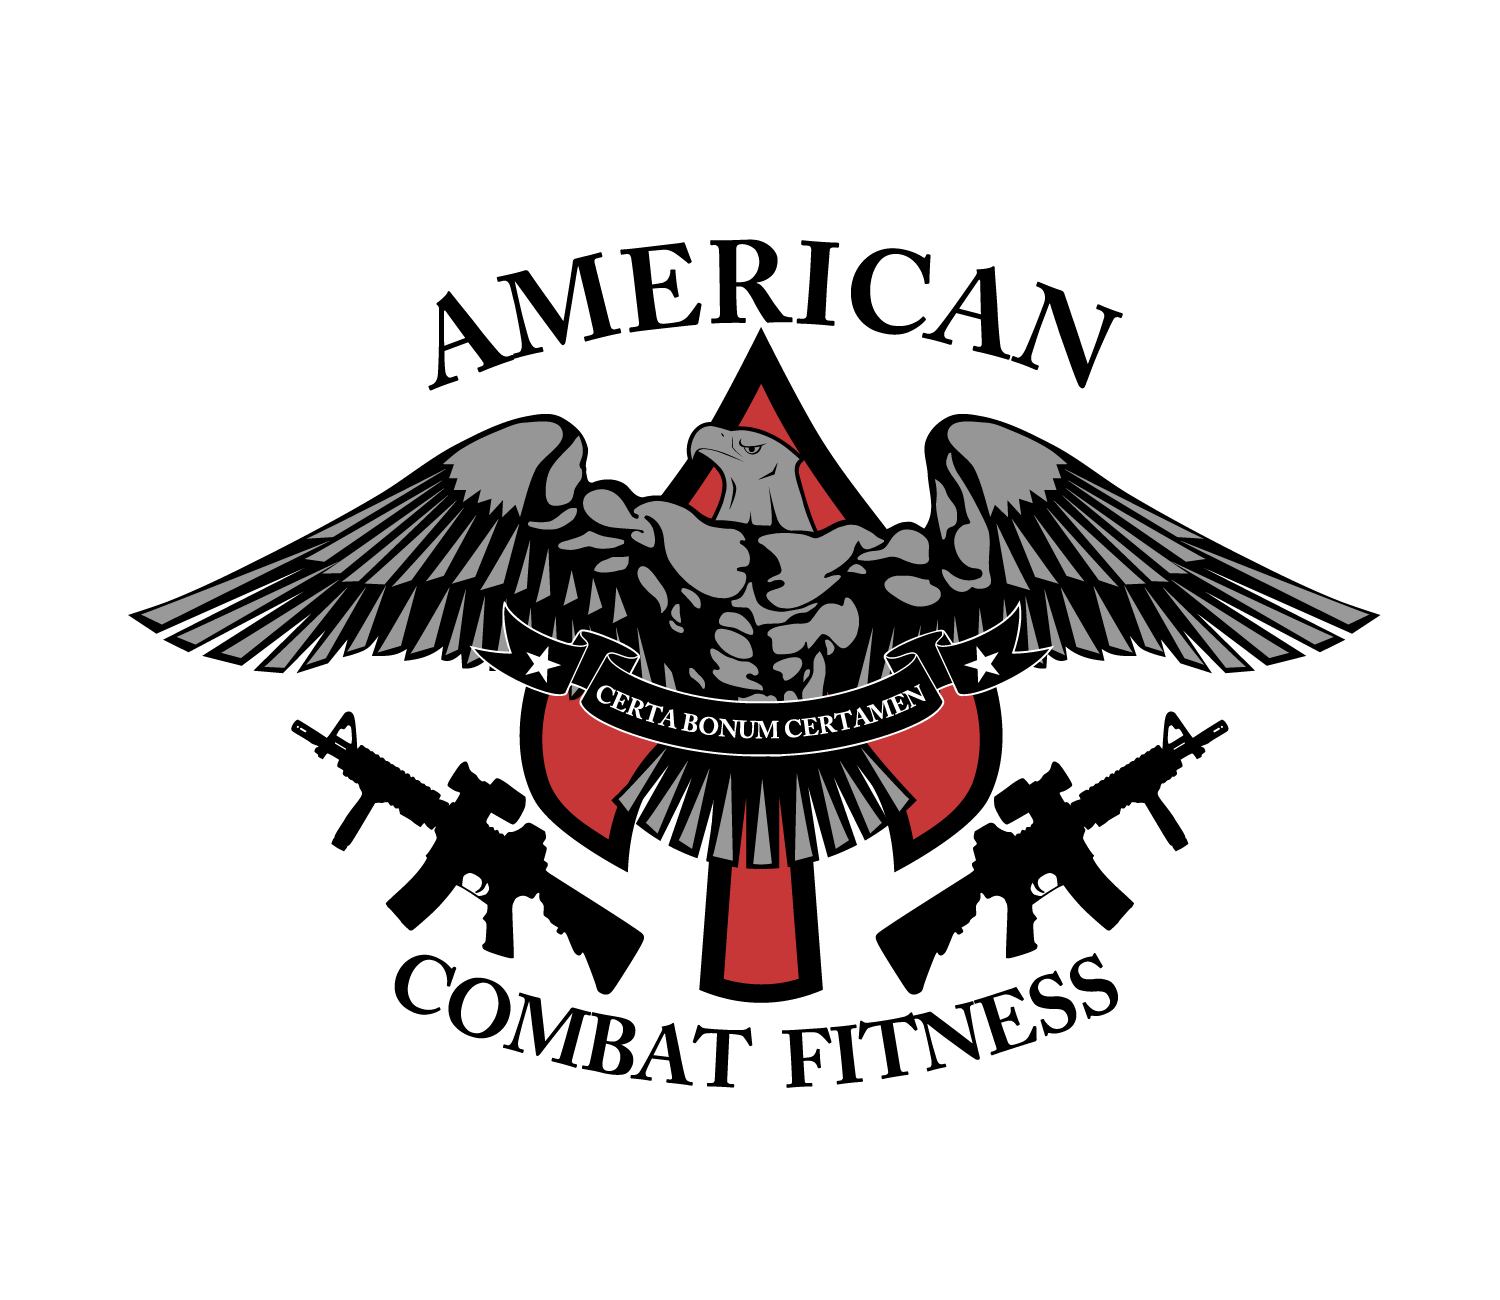 American Combat Fitness needs a new logo